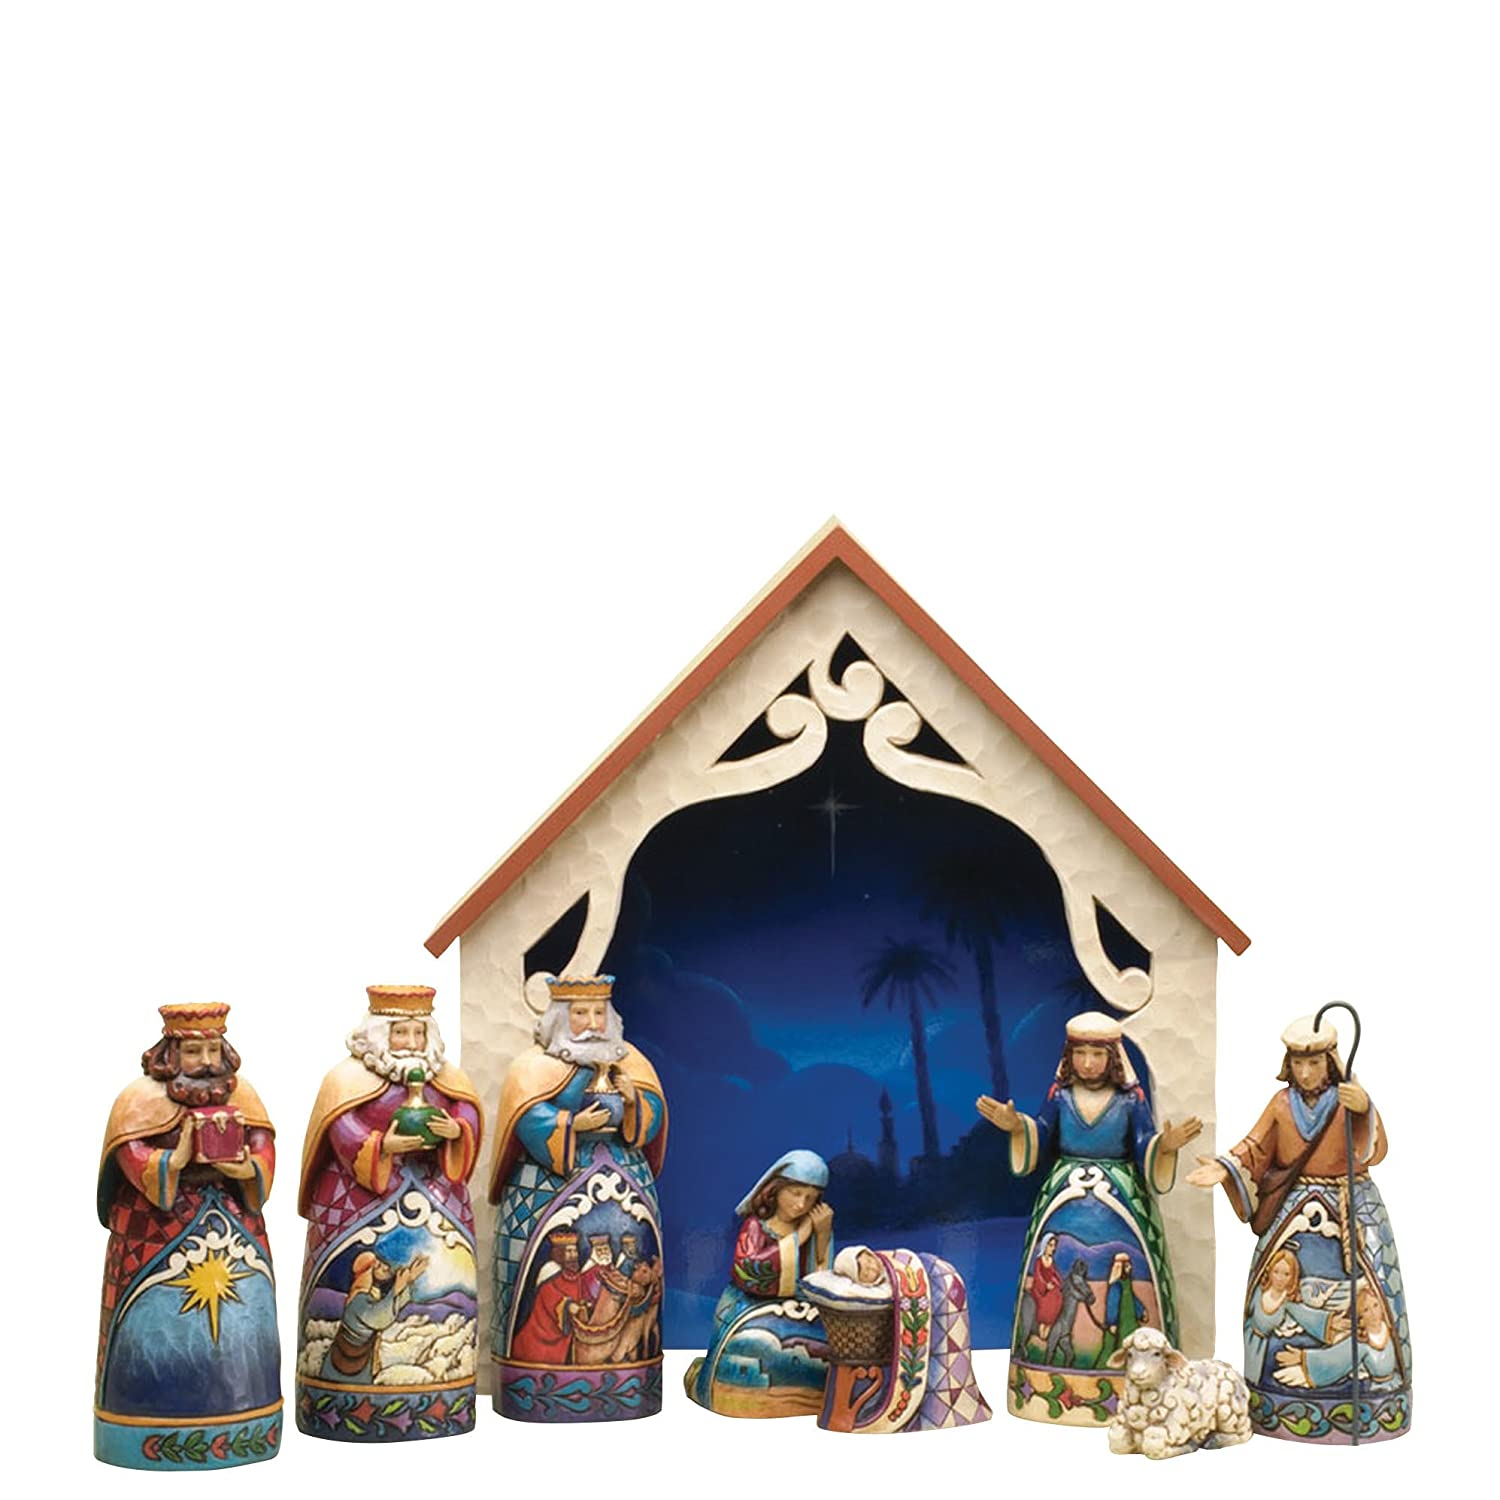 "Jim Shore Heartwood Creek 9-Piece Mini Nativity Set Stone Resin Figurine, 9.75"" 9.75"" Department56 4034382"